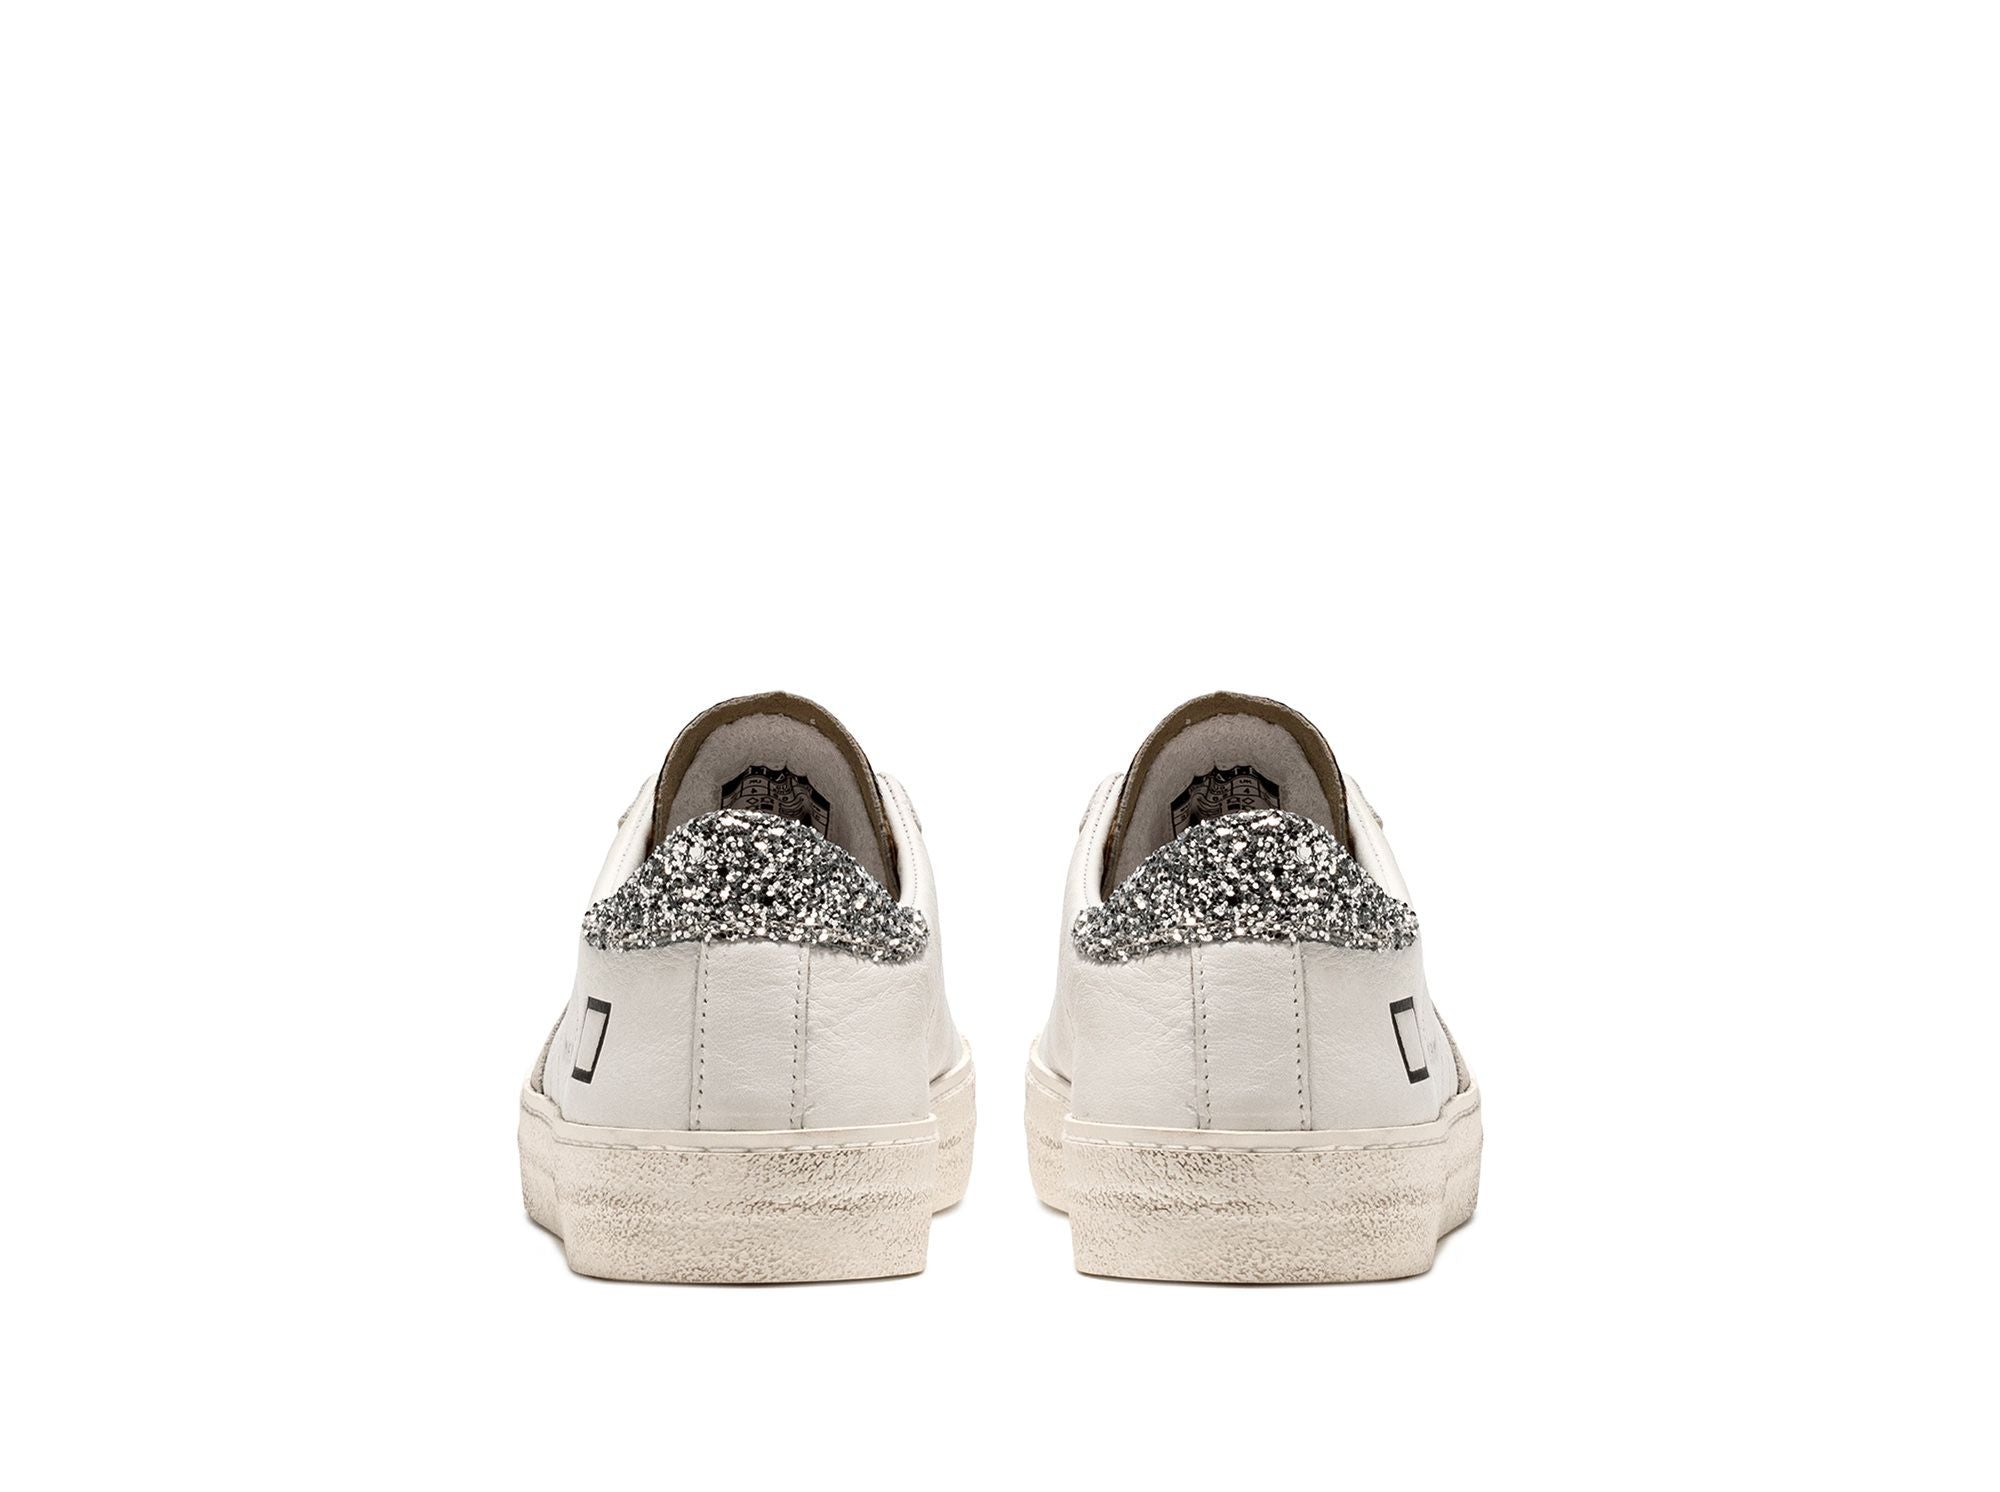 Hill Low White & Pony Sneaker